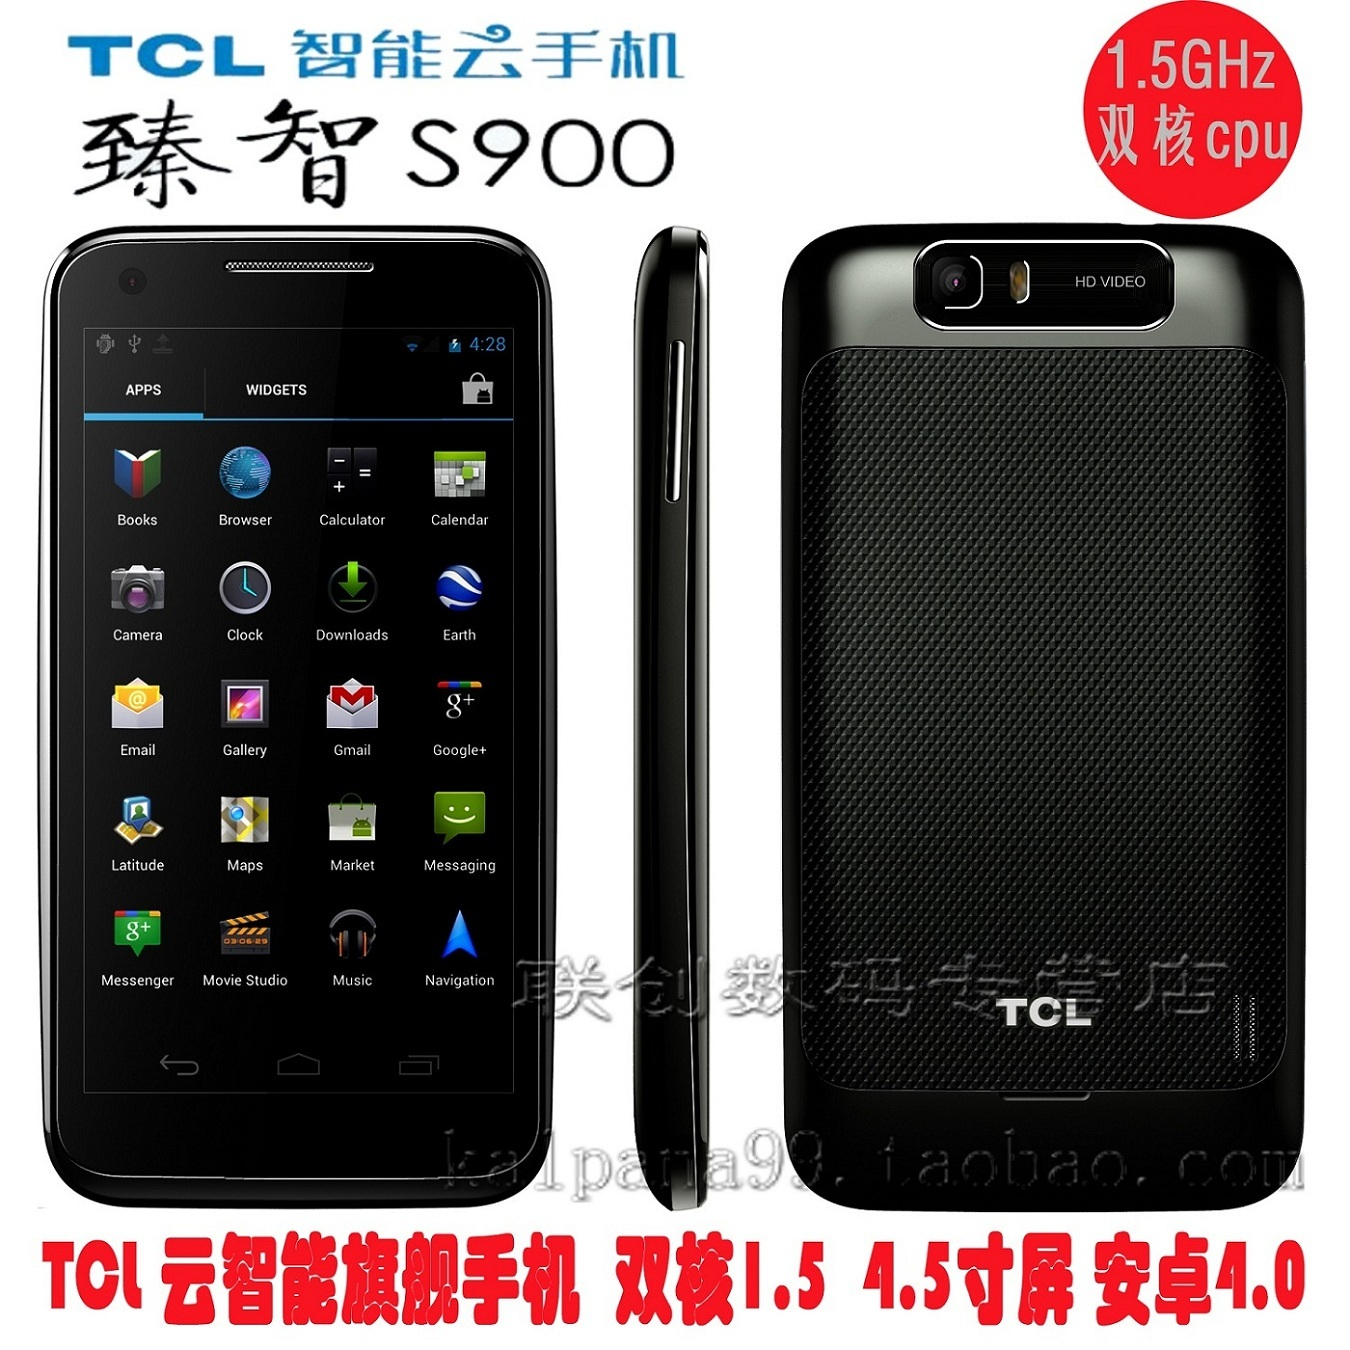 TCL Android smart phone express S900 perfected dual-core 1.5G 4.5-inch screen stock sale